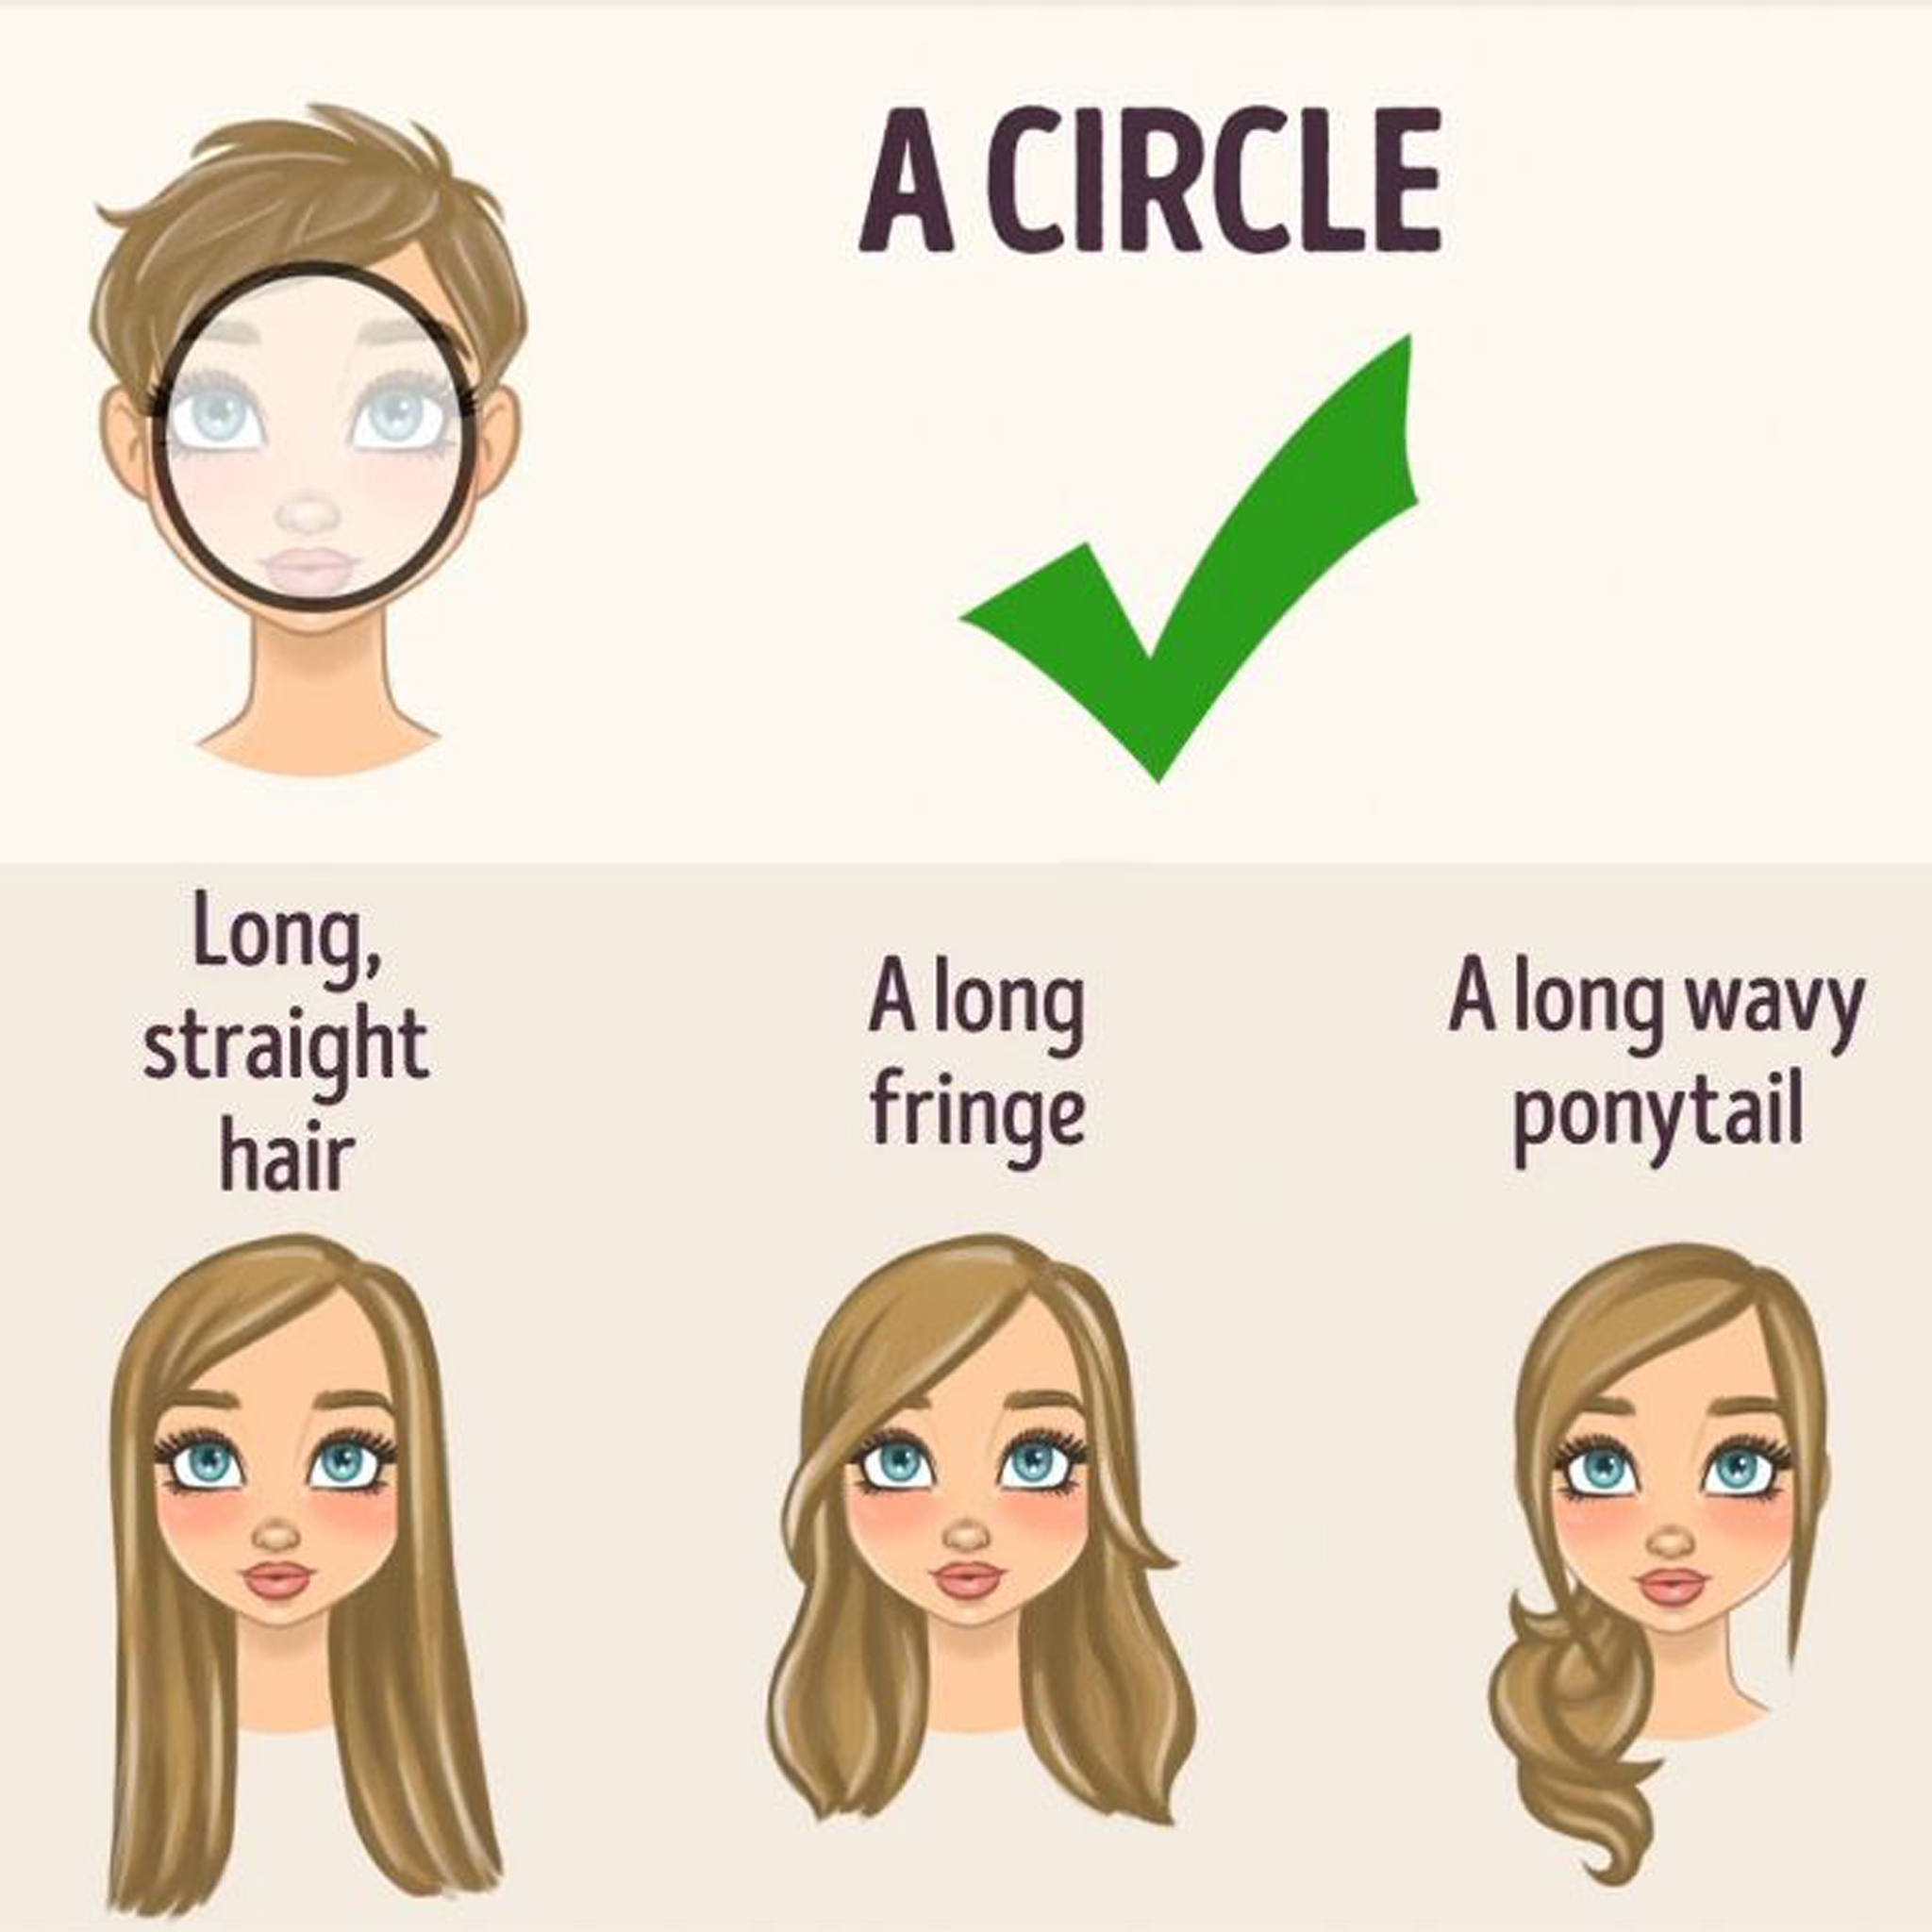 Find The Right Hairstyle For Your Face Shape